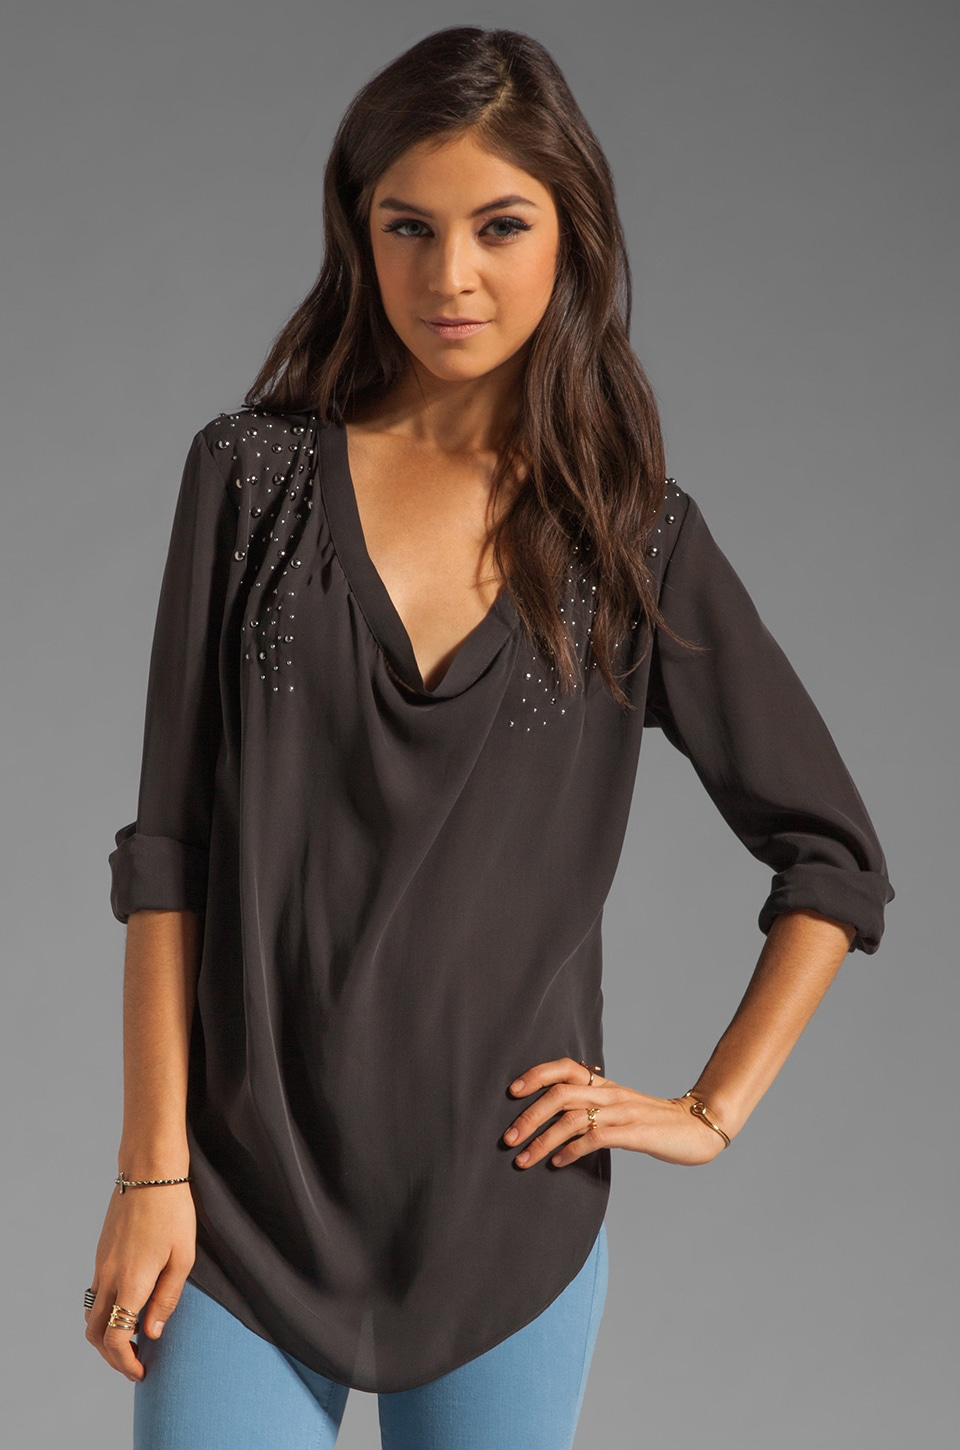 Haute Hippie Embellished Blouse in Asphalt